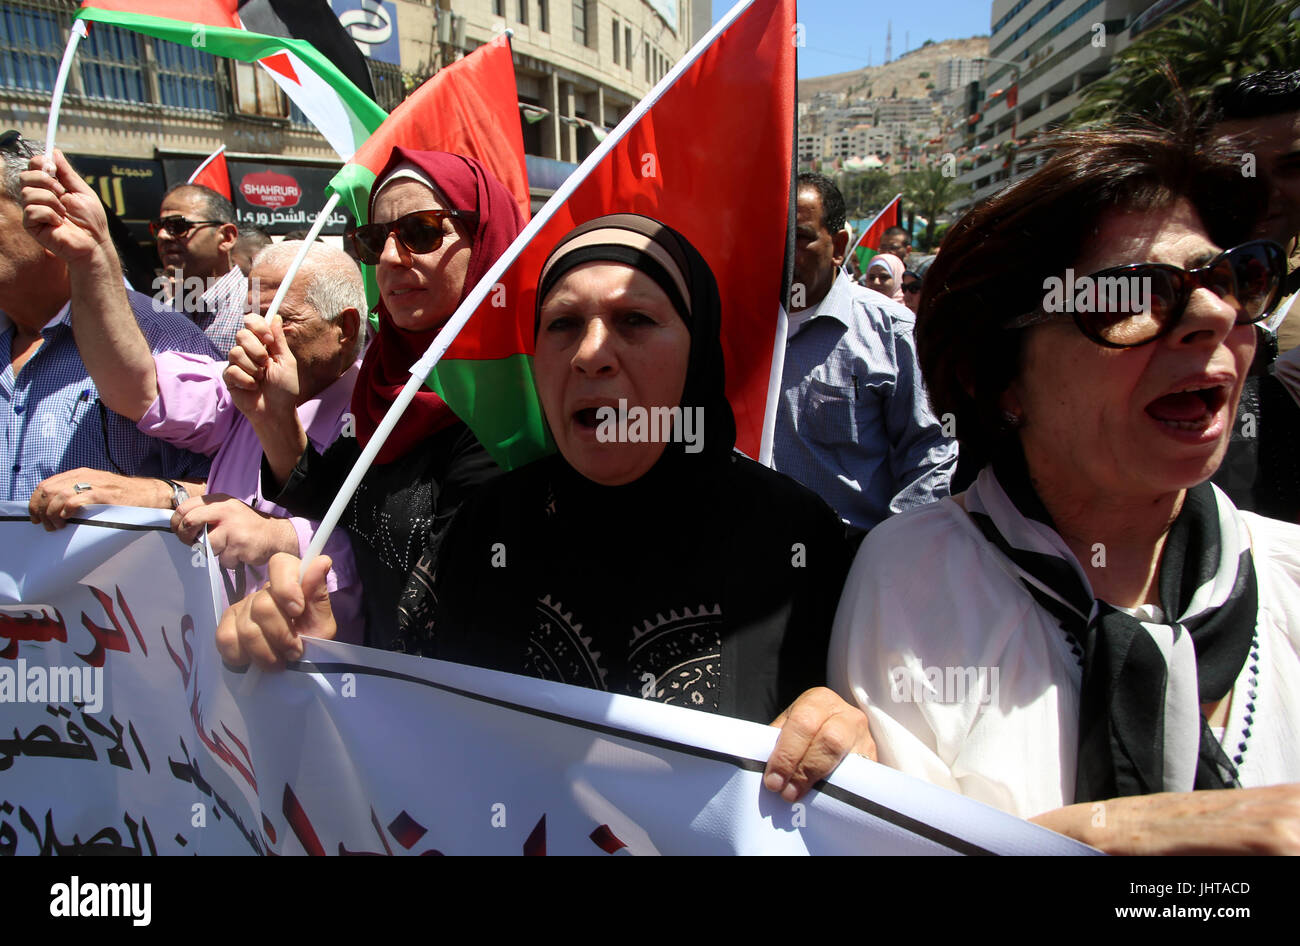 Nablus. 16th July, 2017. Palestinian protesters shout slogans during a protest against the closure of the Al-Aqsa Stock Photo